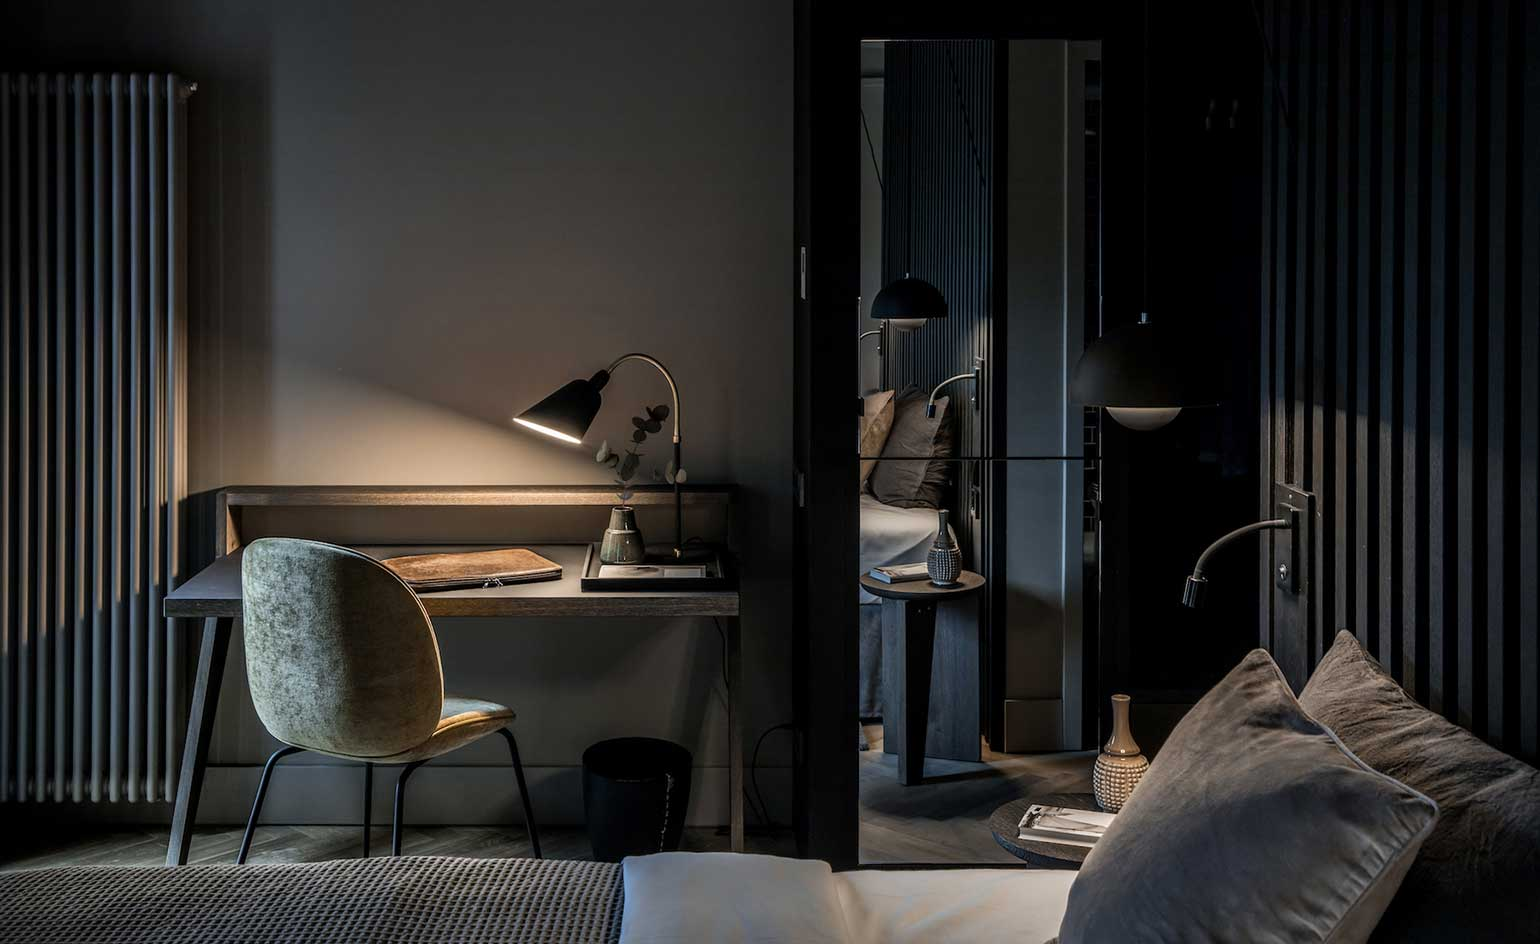 mauritzhof hotel review m nster germany wallpaper. Black Bedroom Furniture Sets. Home Design Ideas